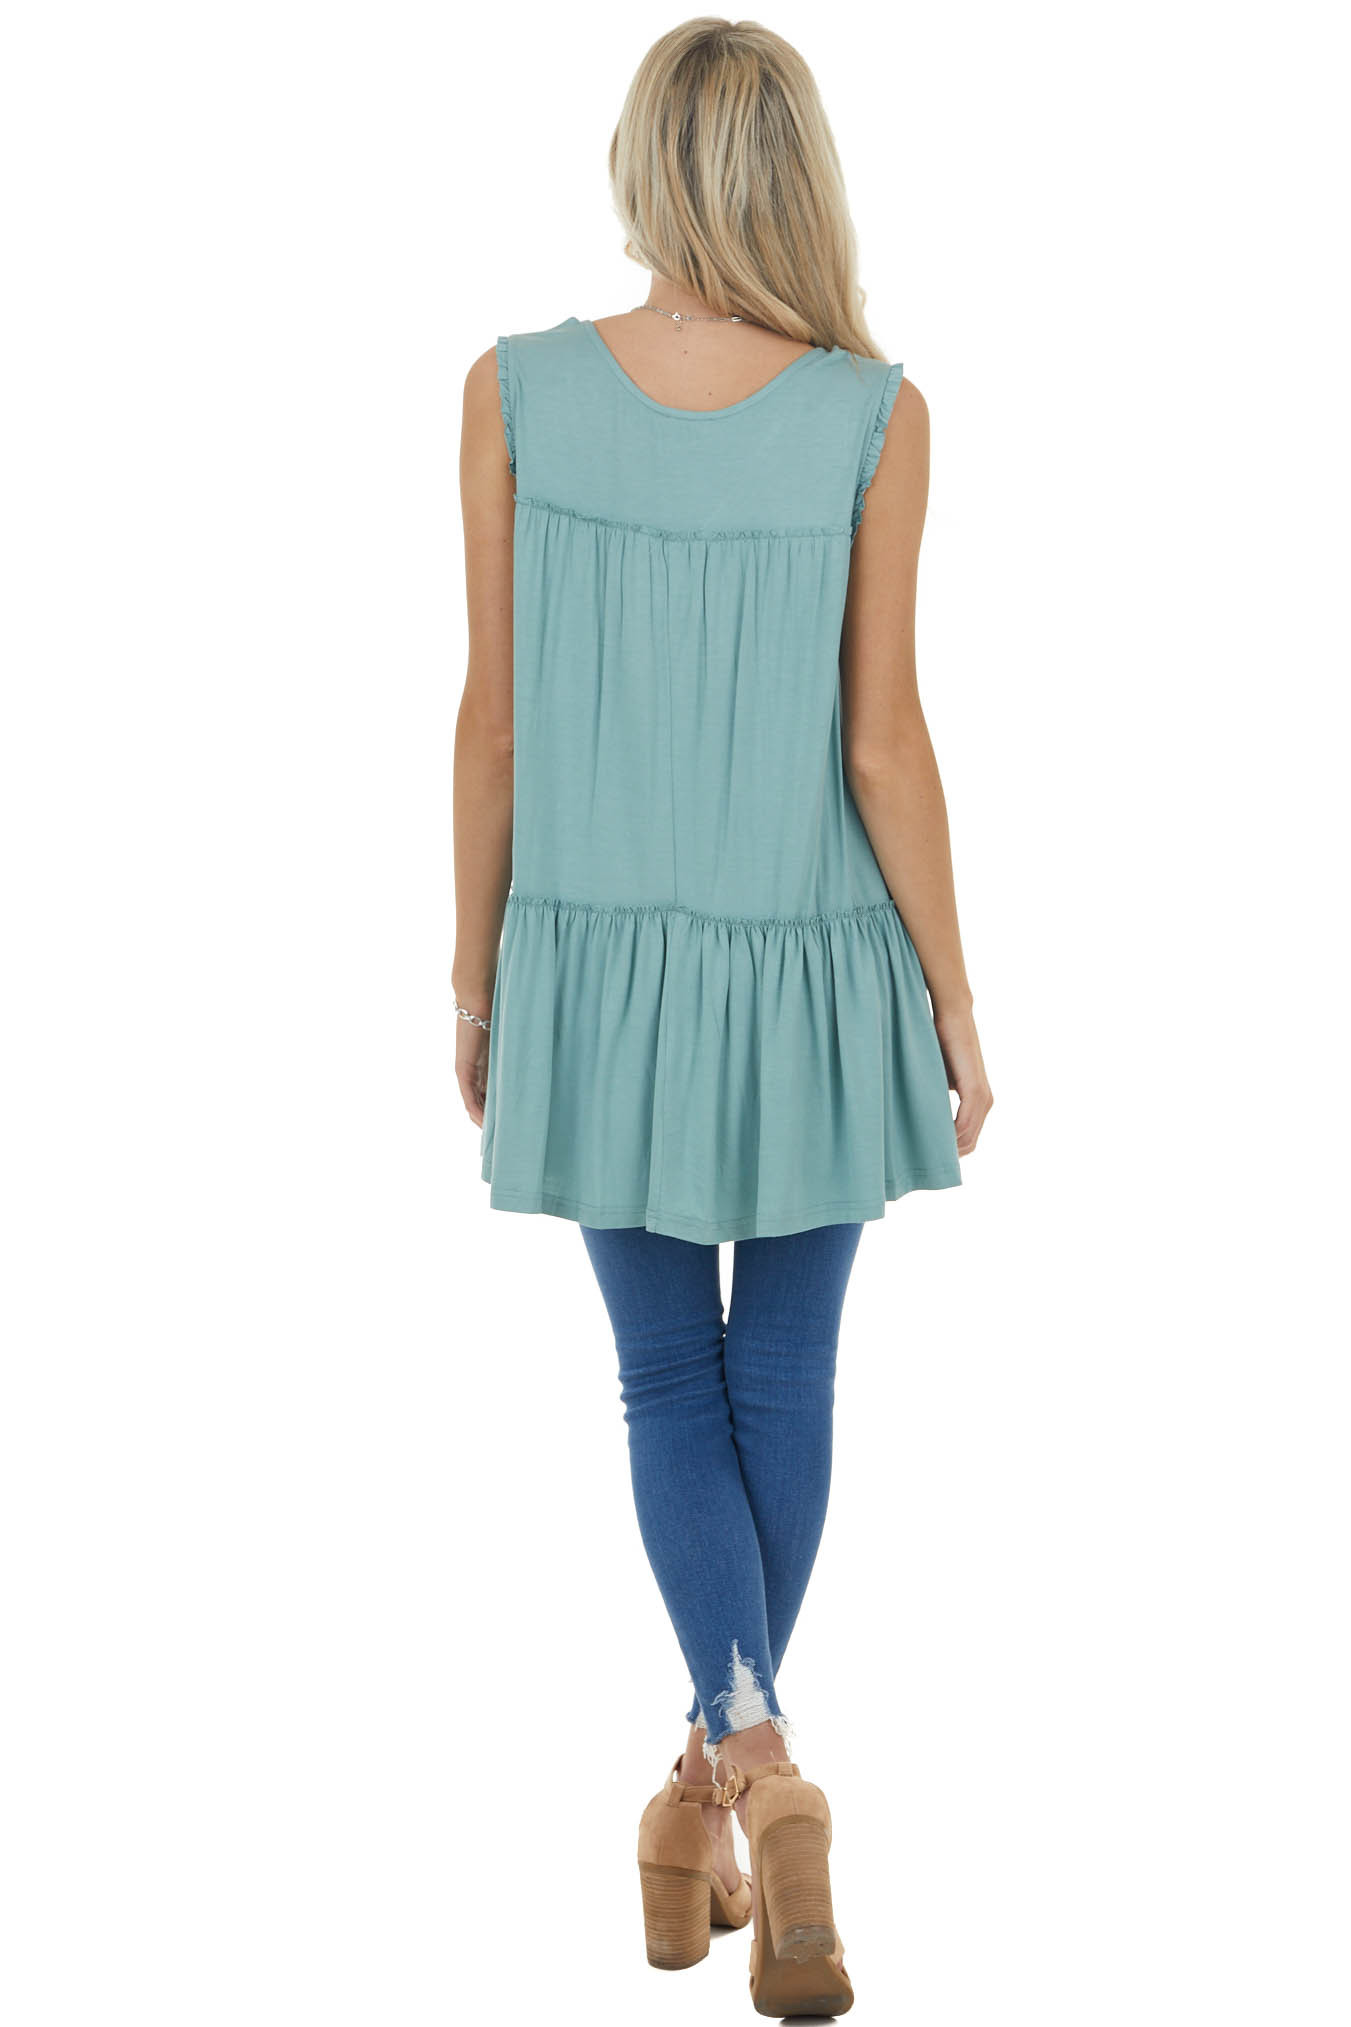 Dark Sage Sleeveless Tunic Knit Top with Frill Details